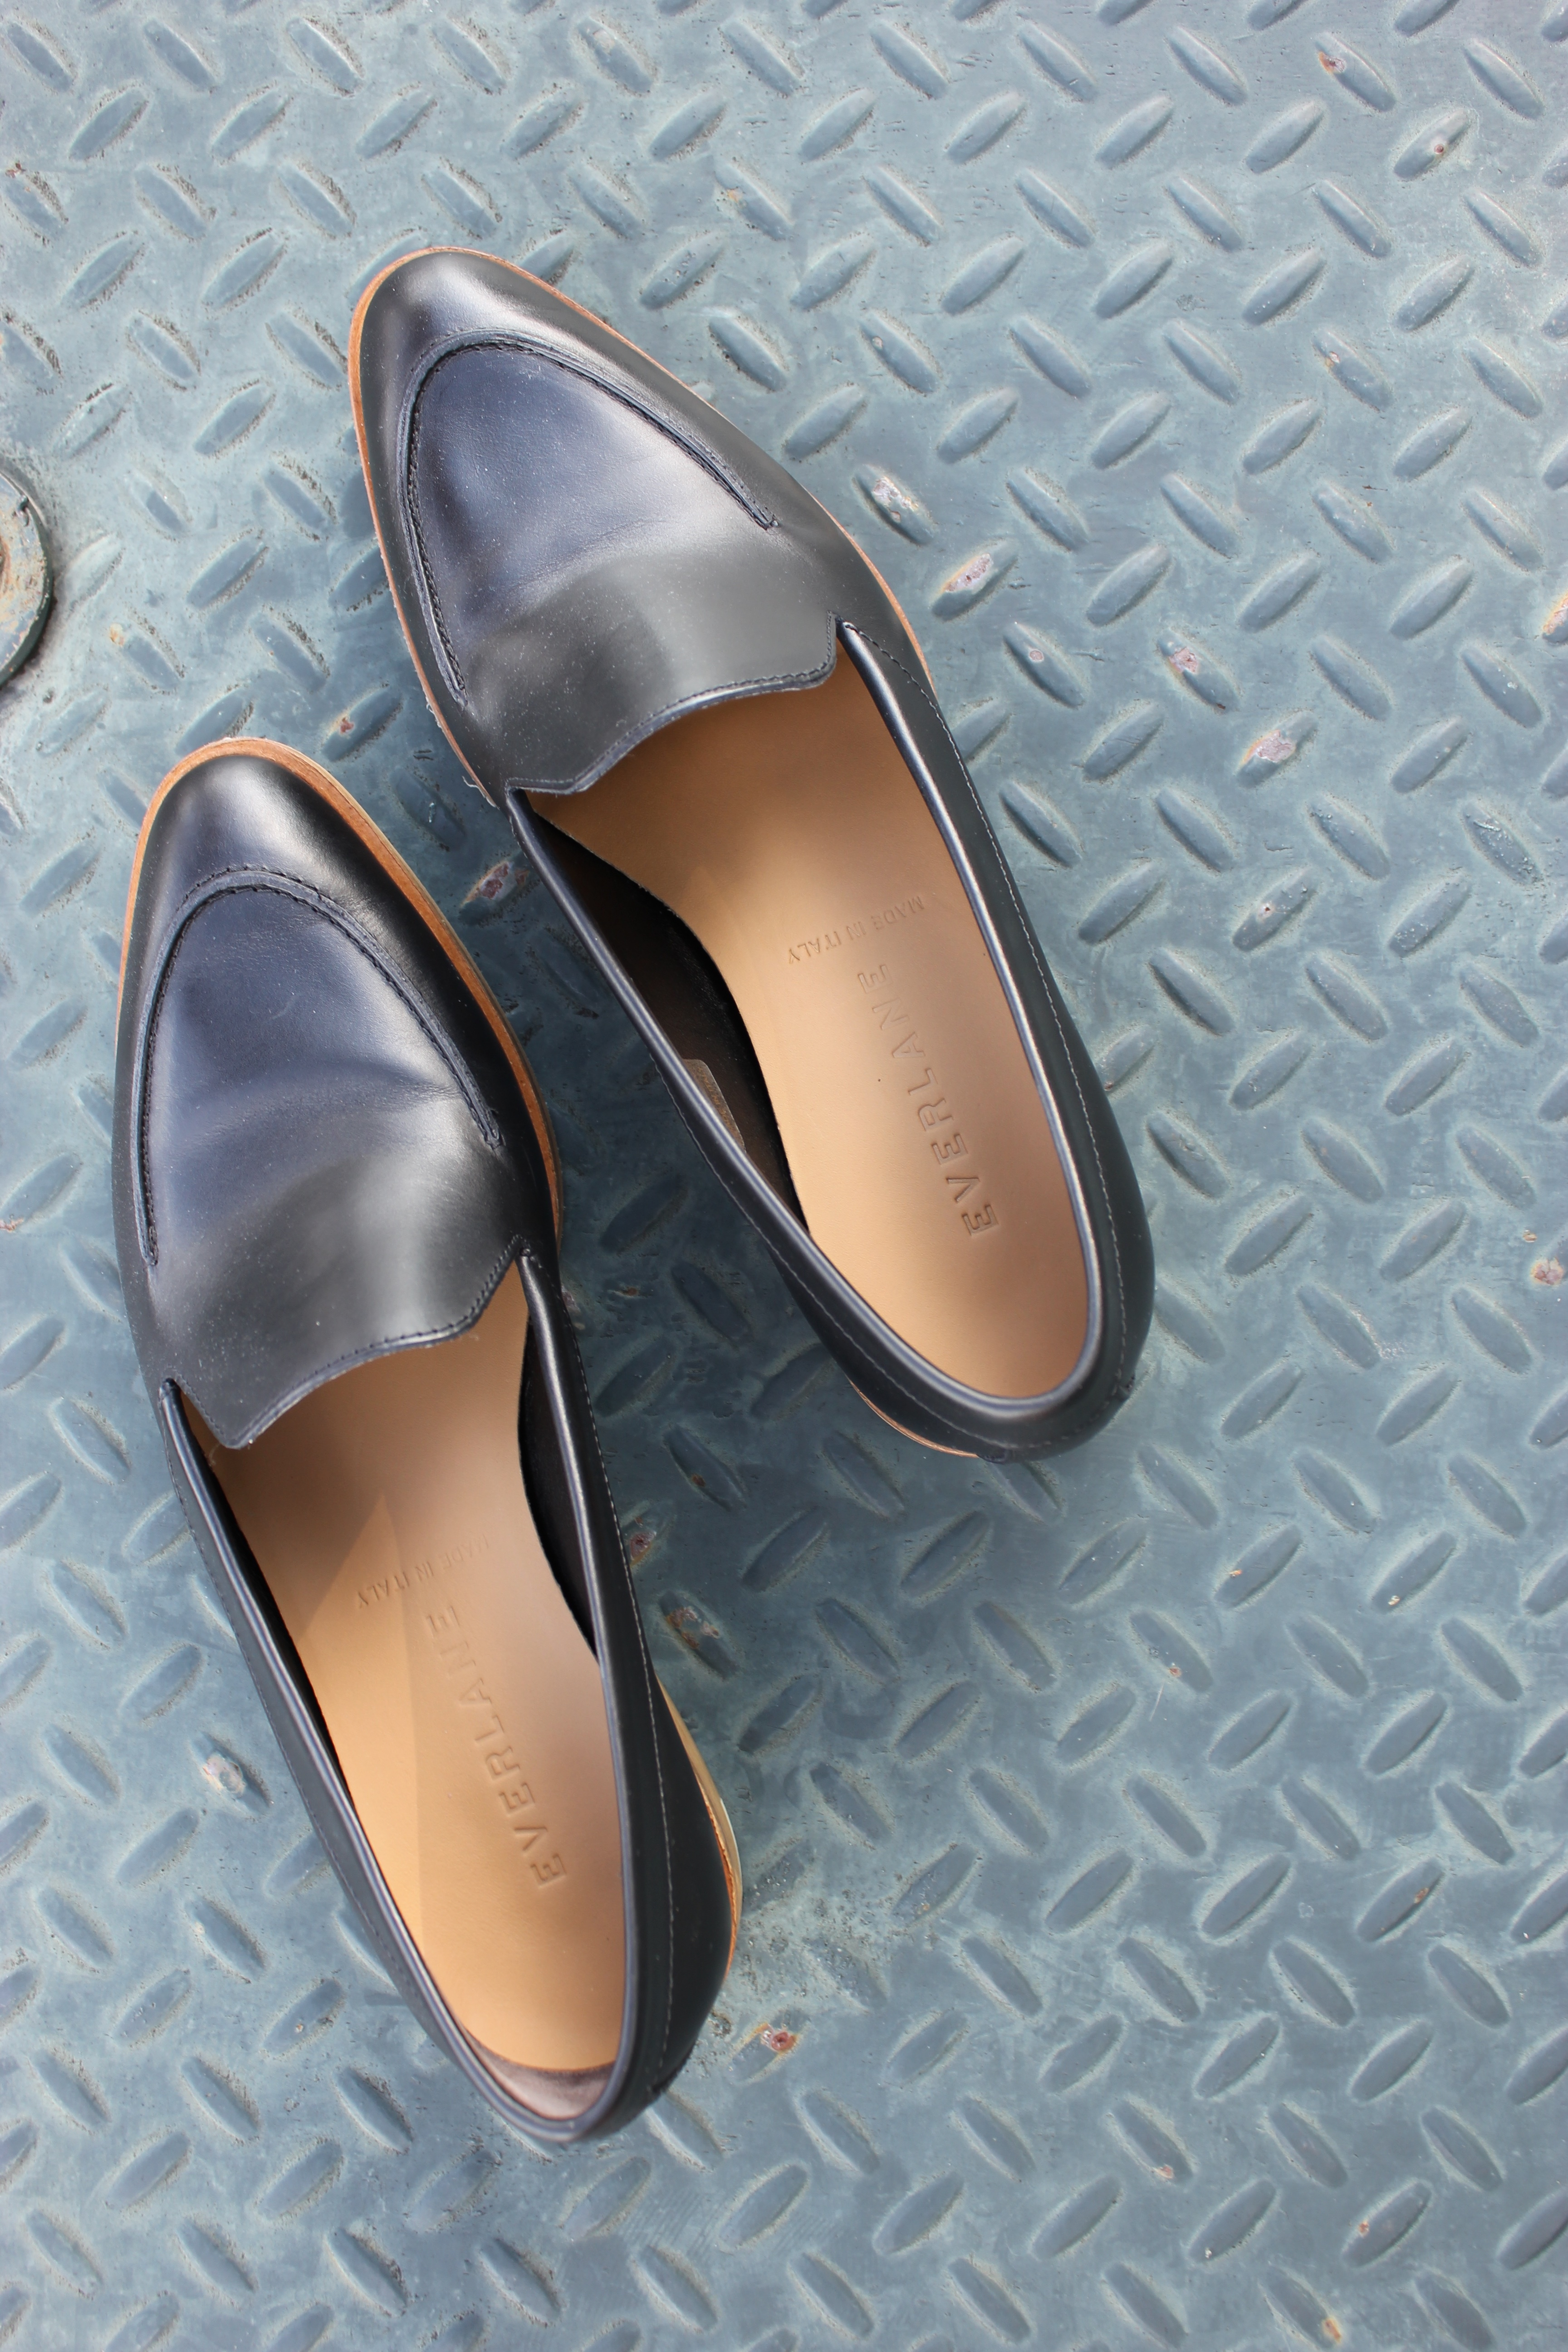 review / Everlane modern loafers